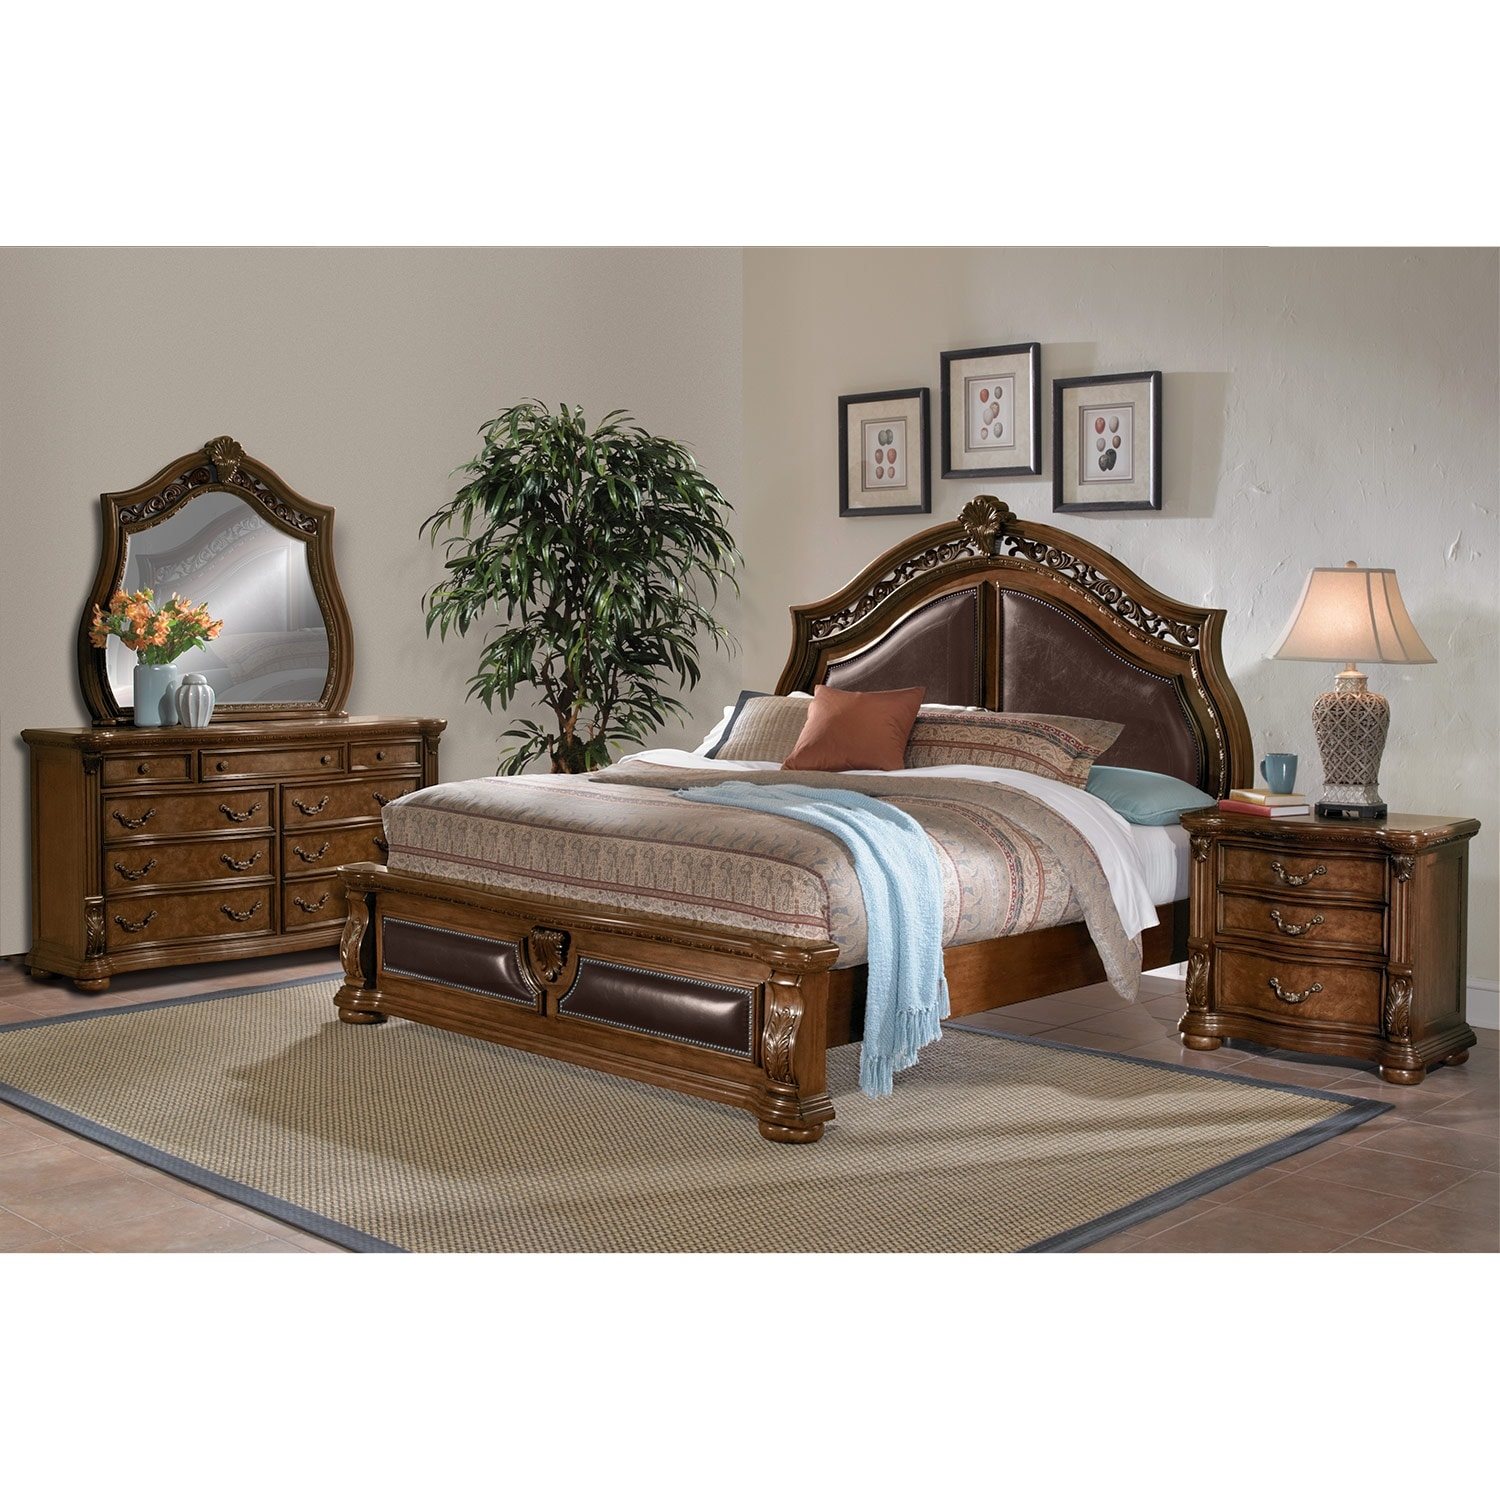 [Morocco 6 Pc. King Bedroom]